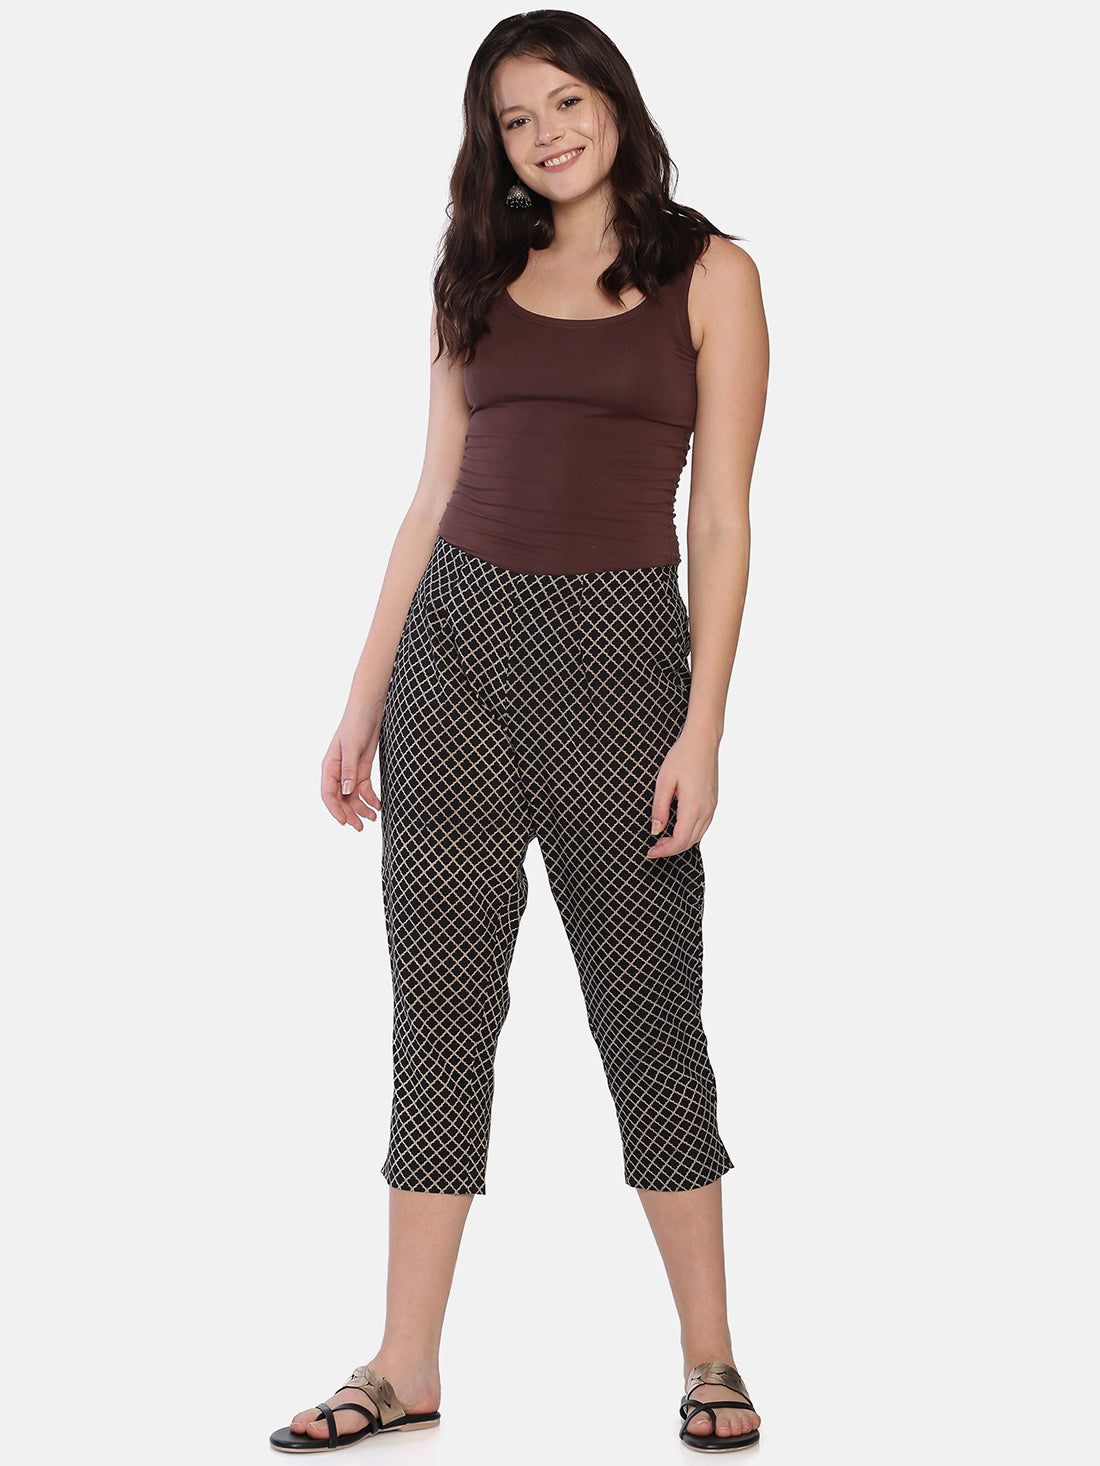 Black Naturally Dyed Cotton Hand Block Printed Cropped Cigarette Pants